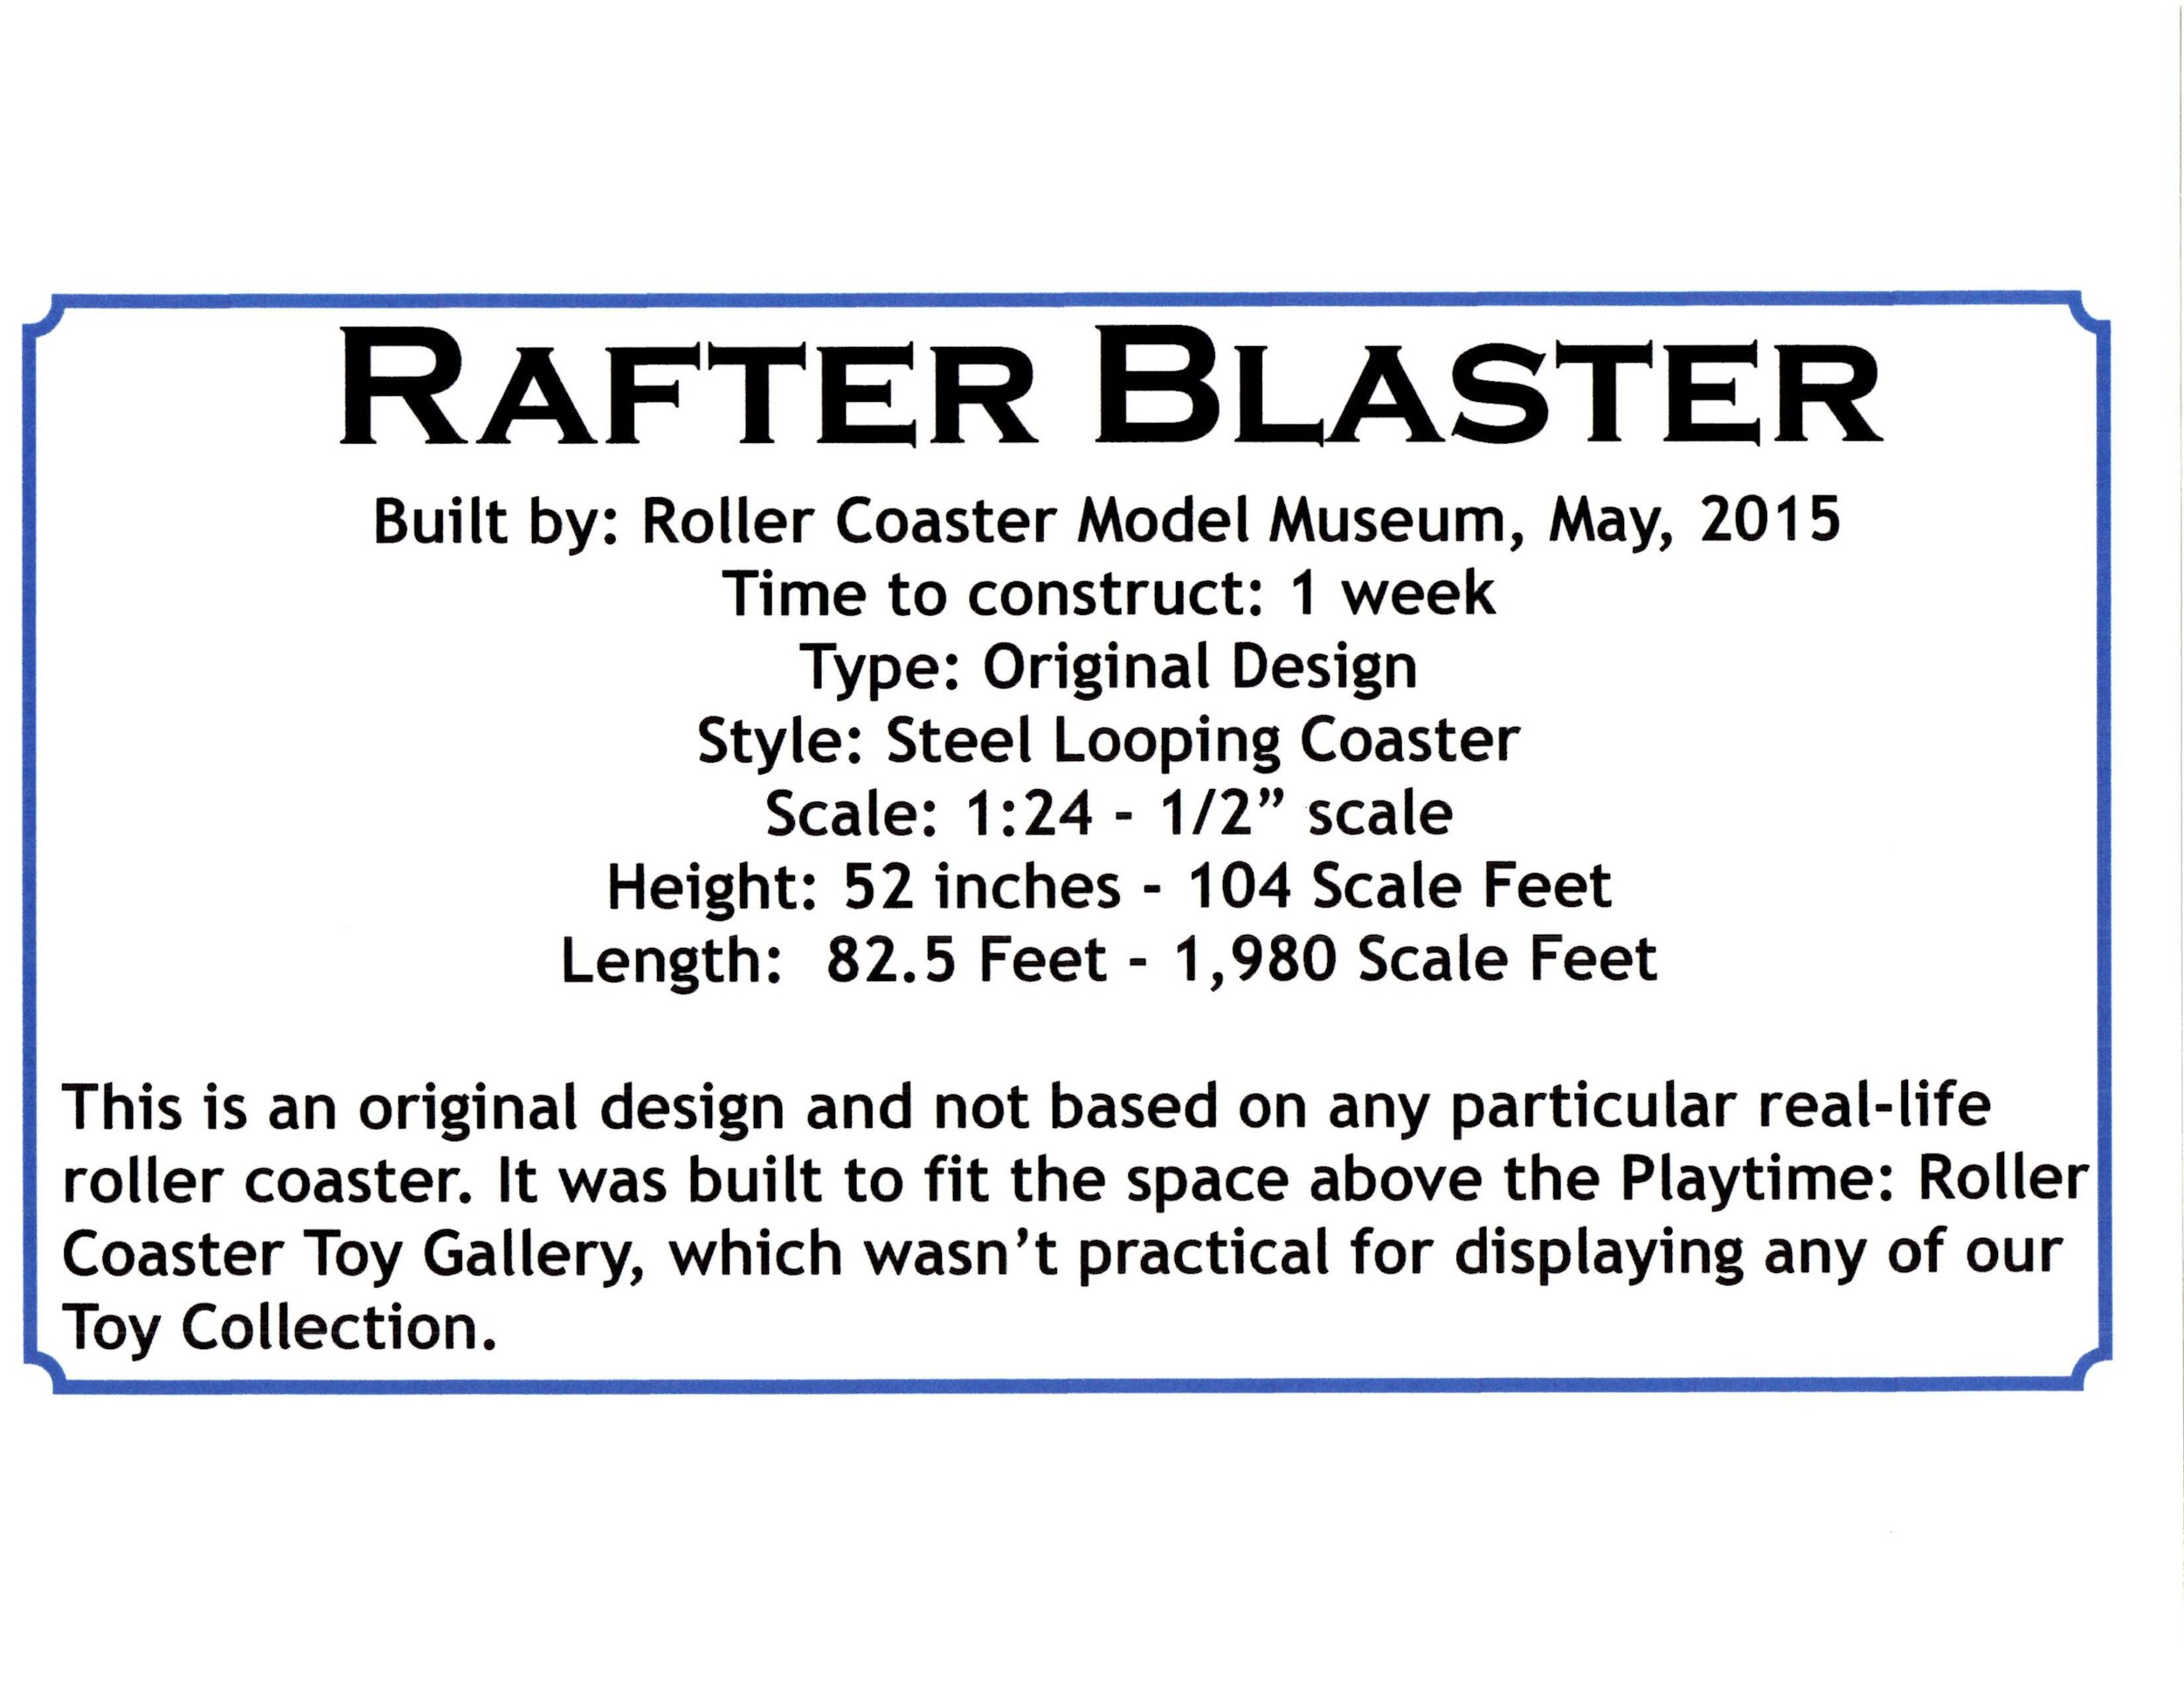 Rafter Blaster Model Roller Coaster (located in the Playtime Gallery)